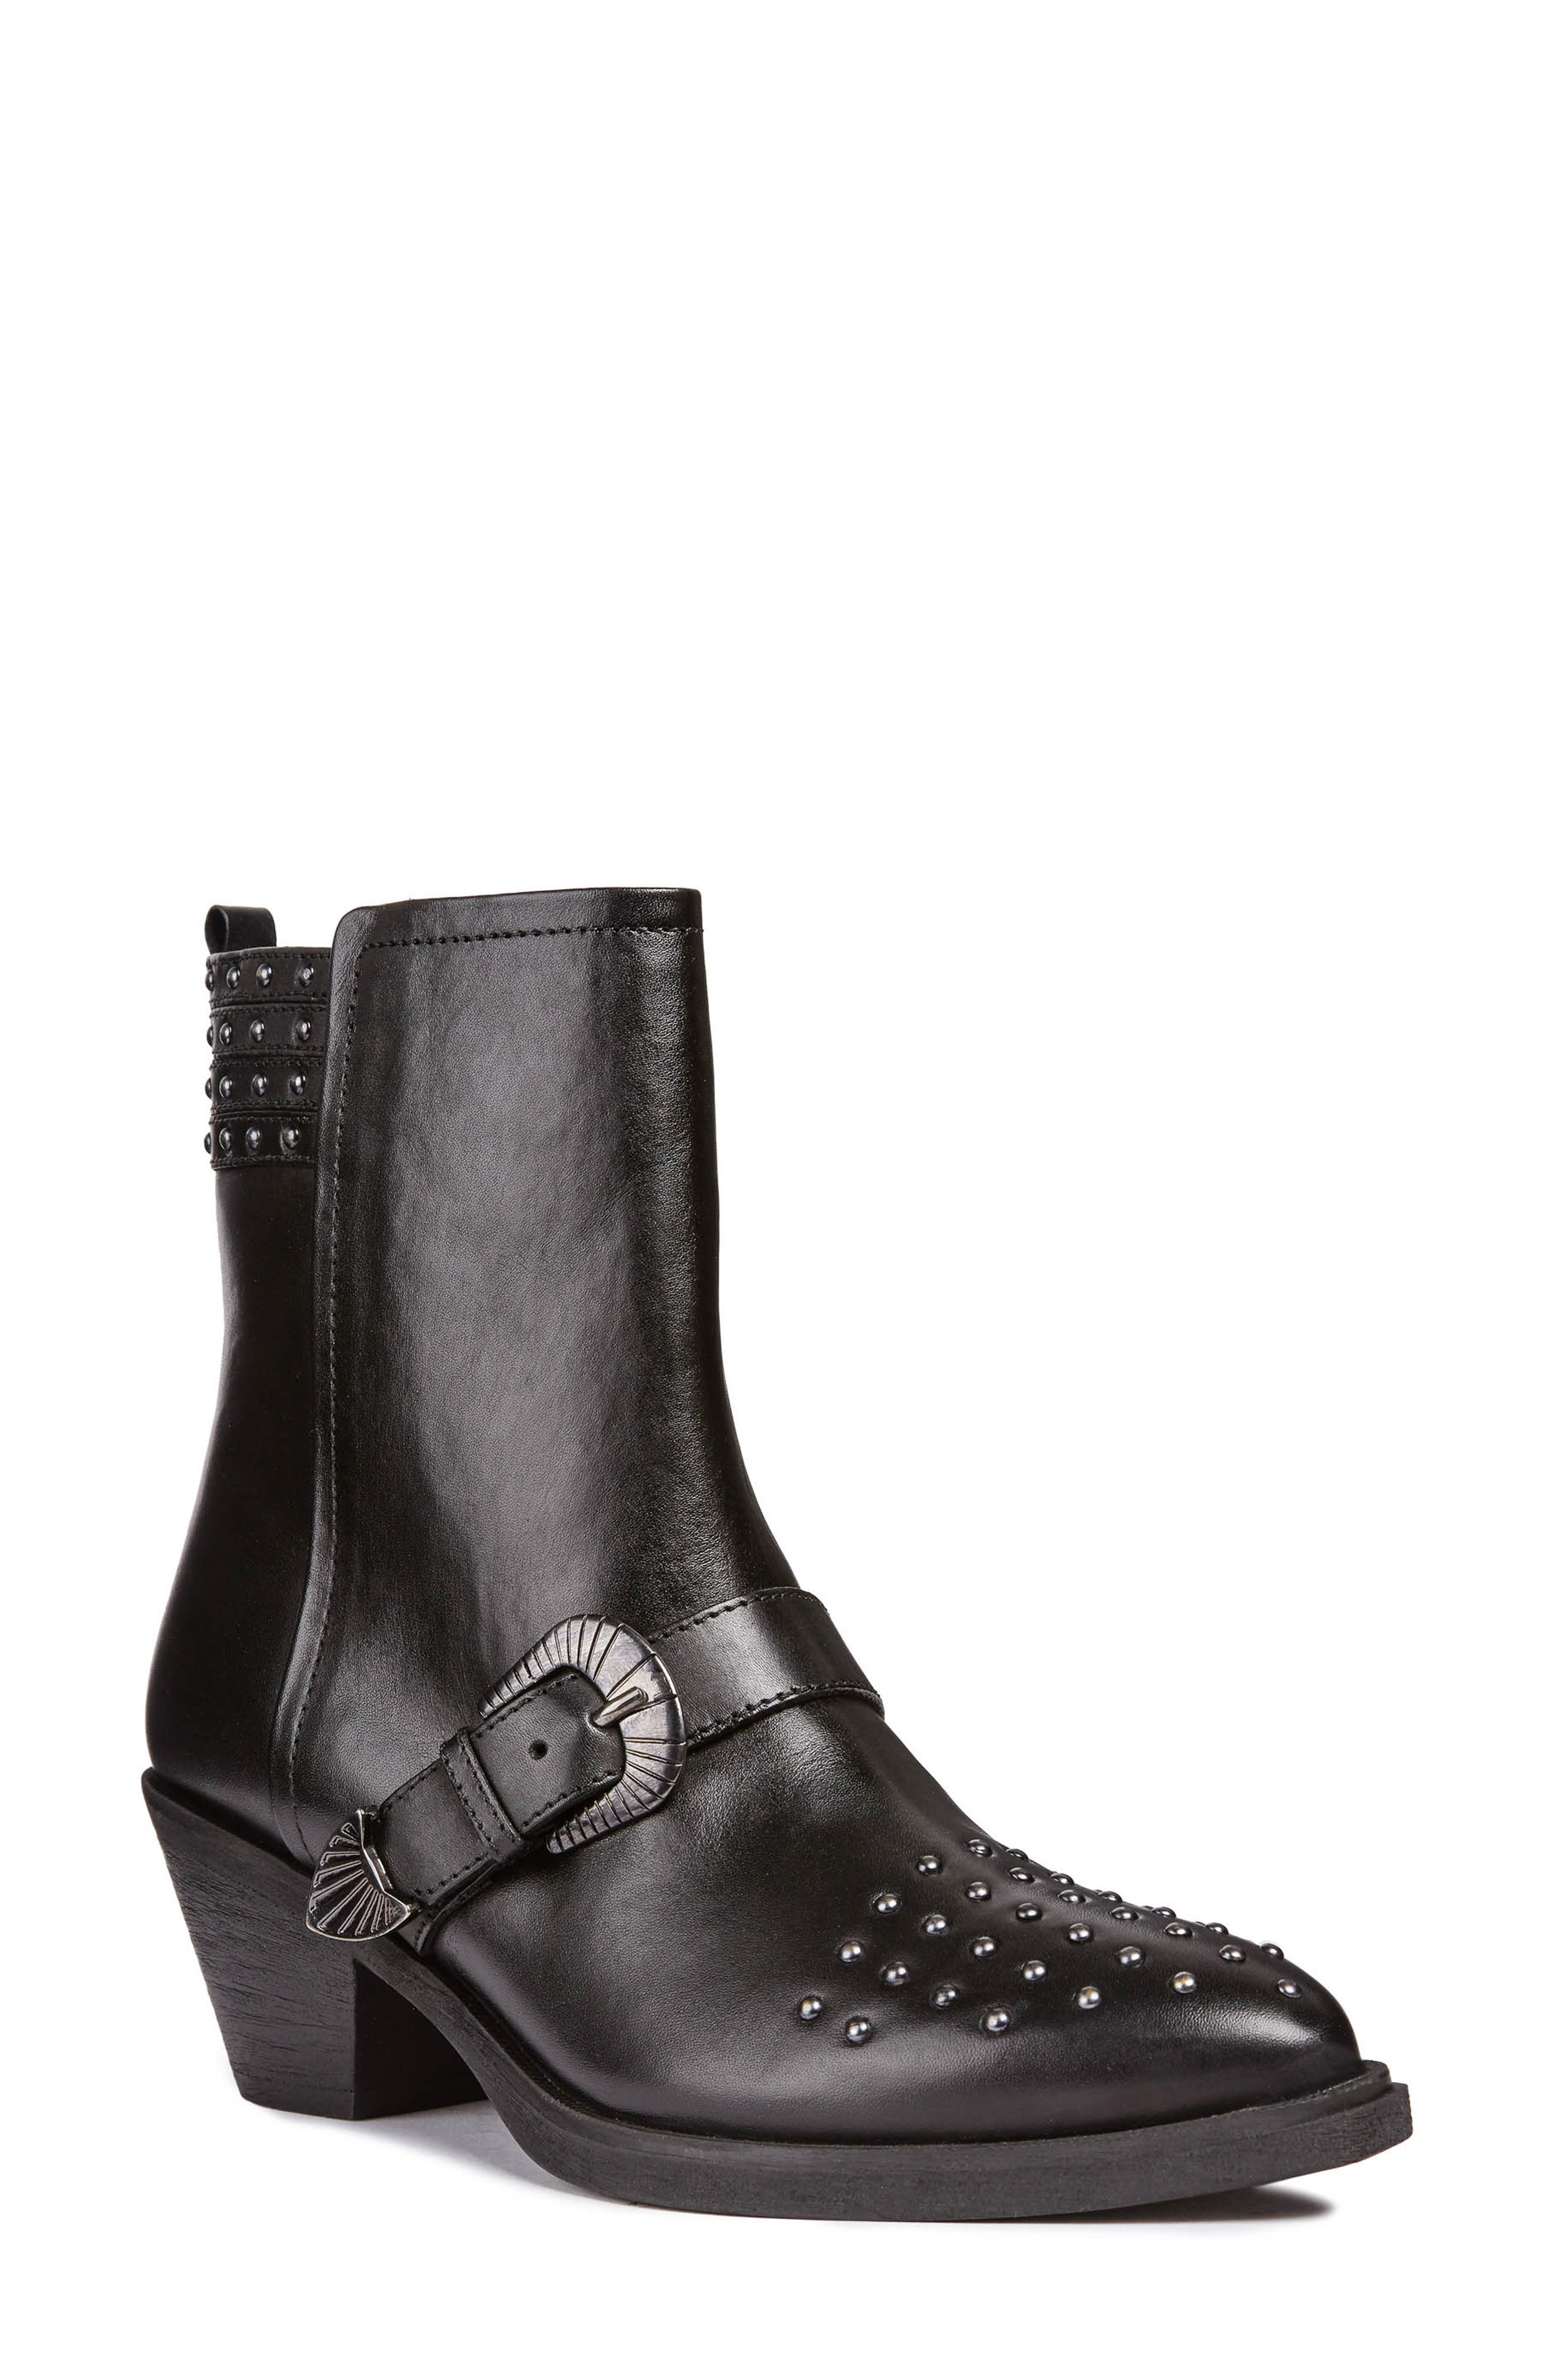 Lovai Bootie,                             Main thumbnail 1, color,                             BLACK LEATHER